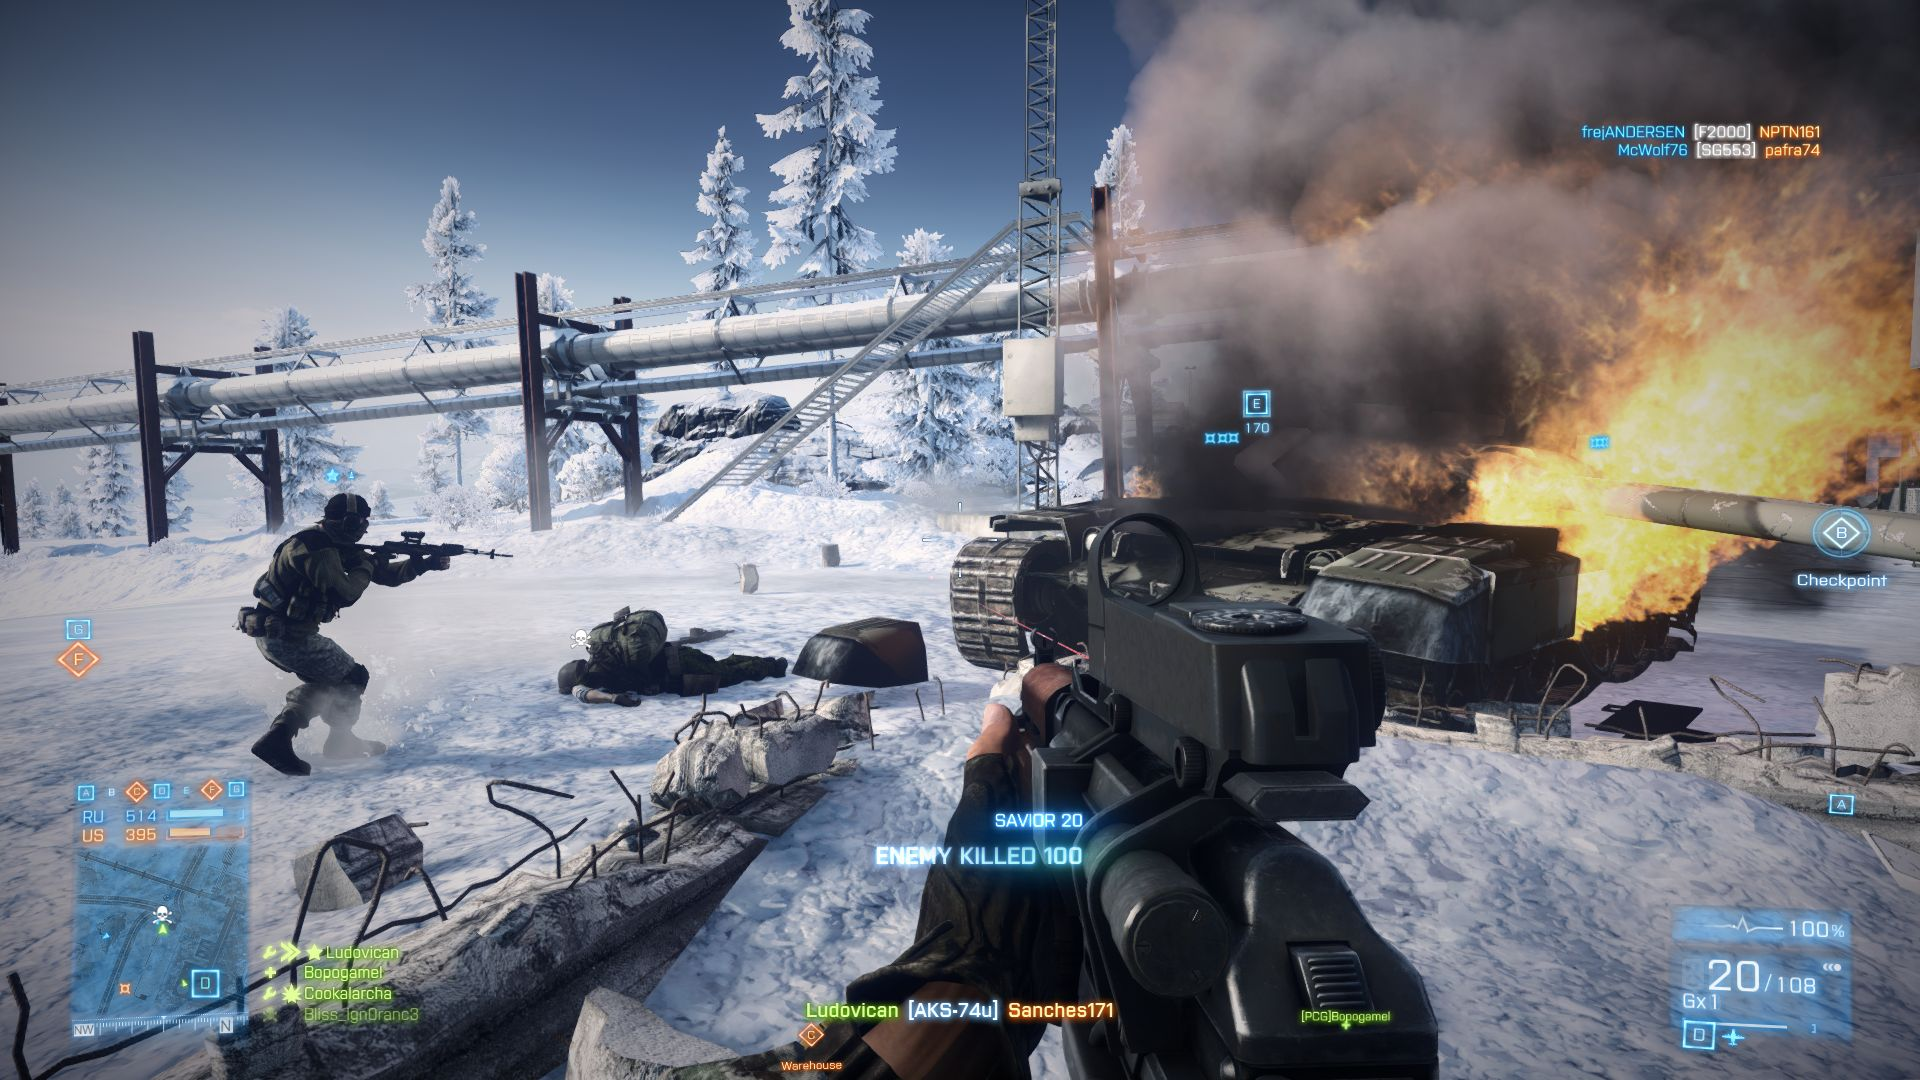 battlefield 3 gameplay image - Armies of the World all ...